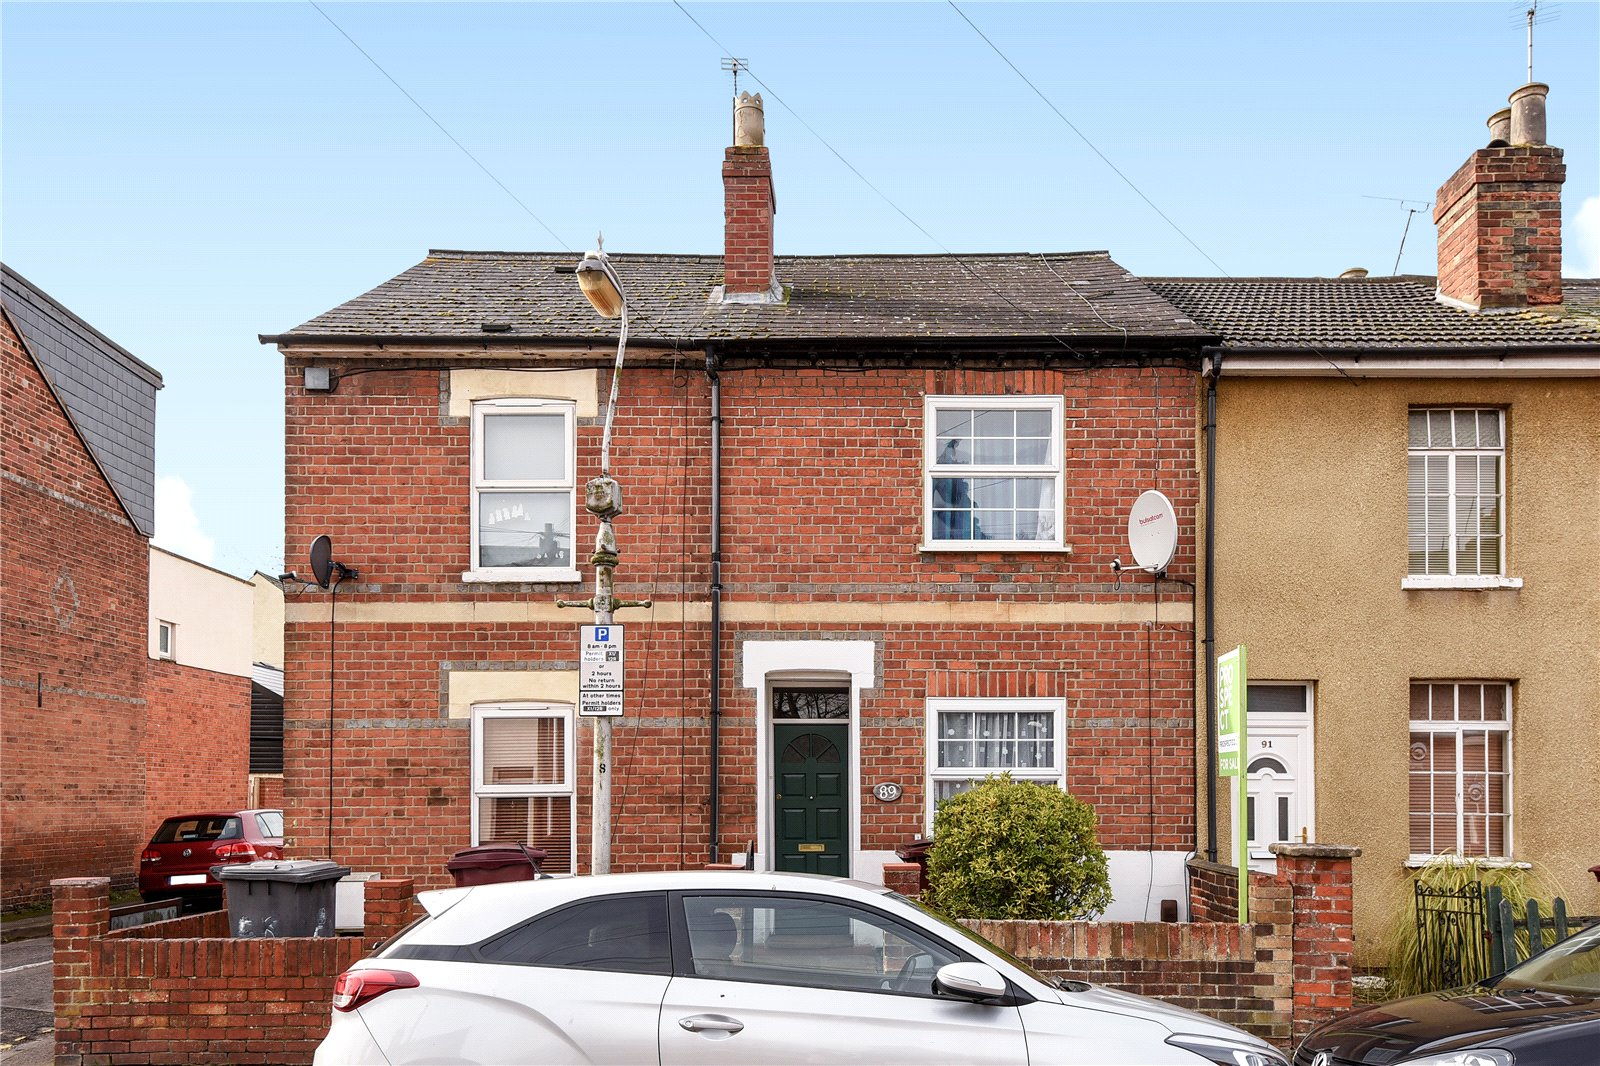 3 Bedrooms Terraced House for sale in Cumberland Road, Reading, Berkshire, RG1